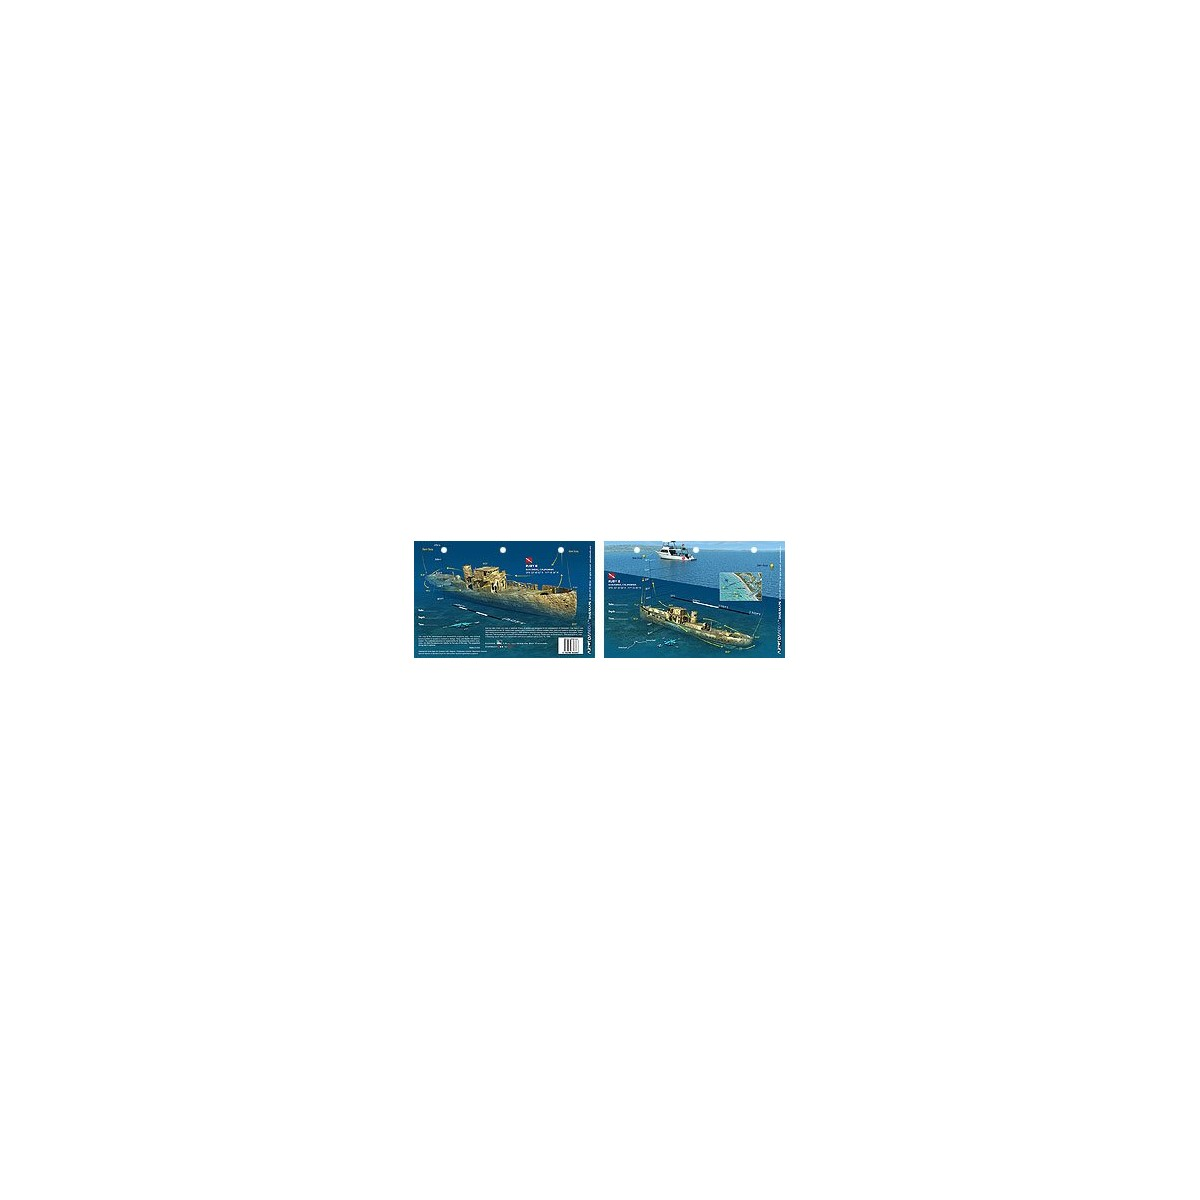 Ruby E in San Diego, California (8.5 x 5.5 Inches) (21.6 x 15cm) - New Art to Media Underwater Waterproof 3D Dive Site Map